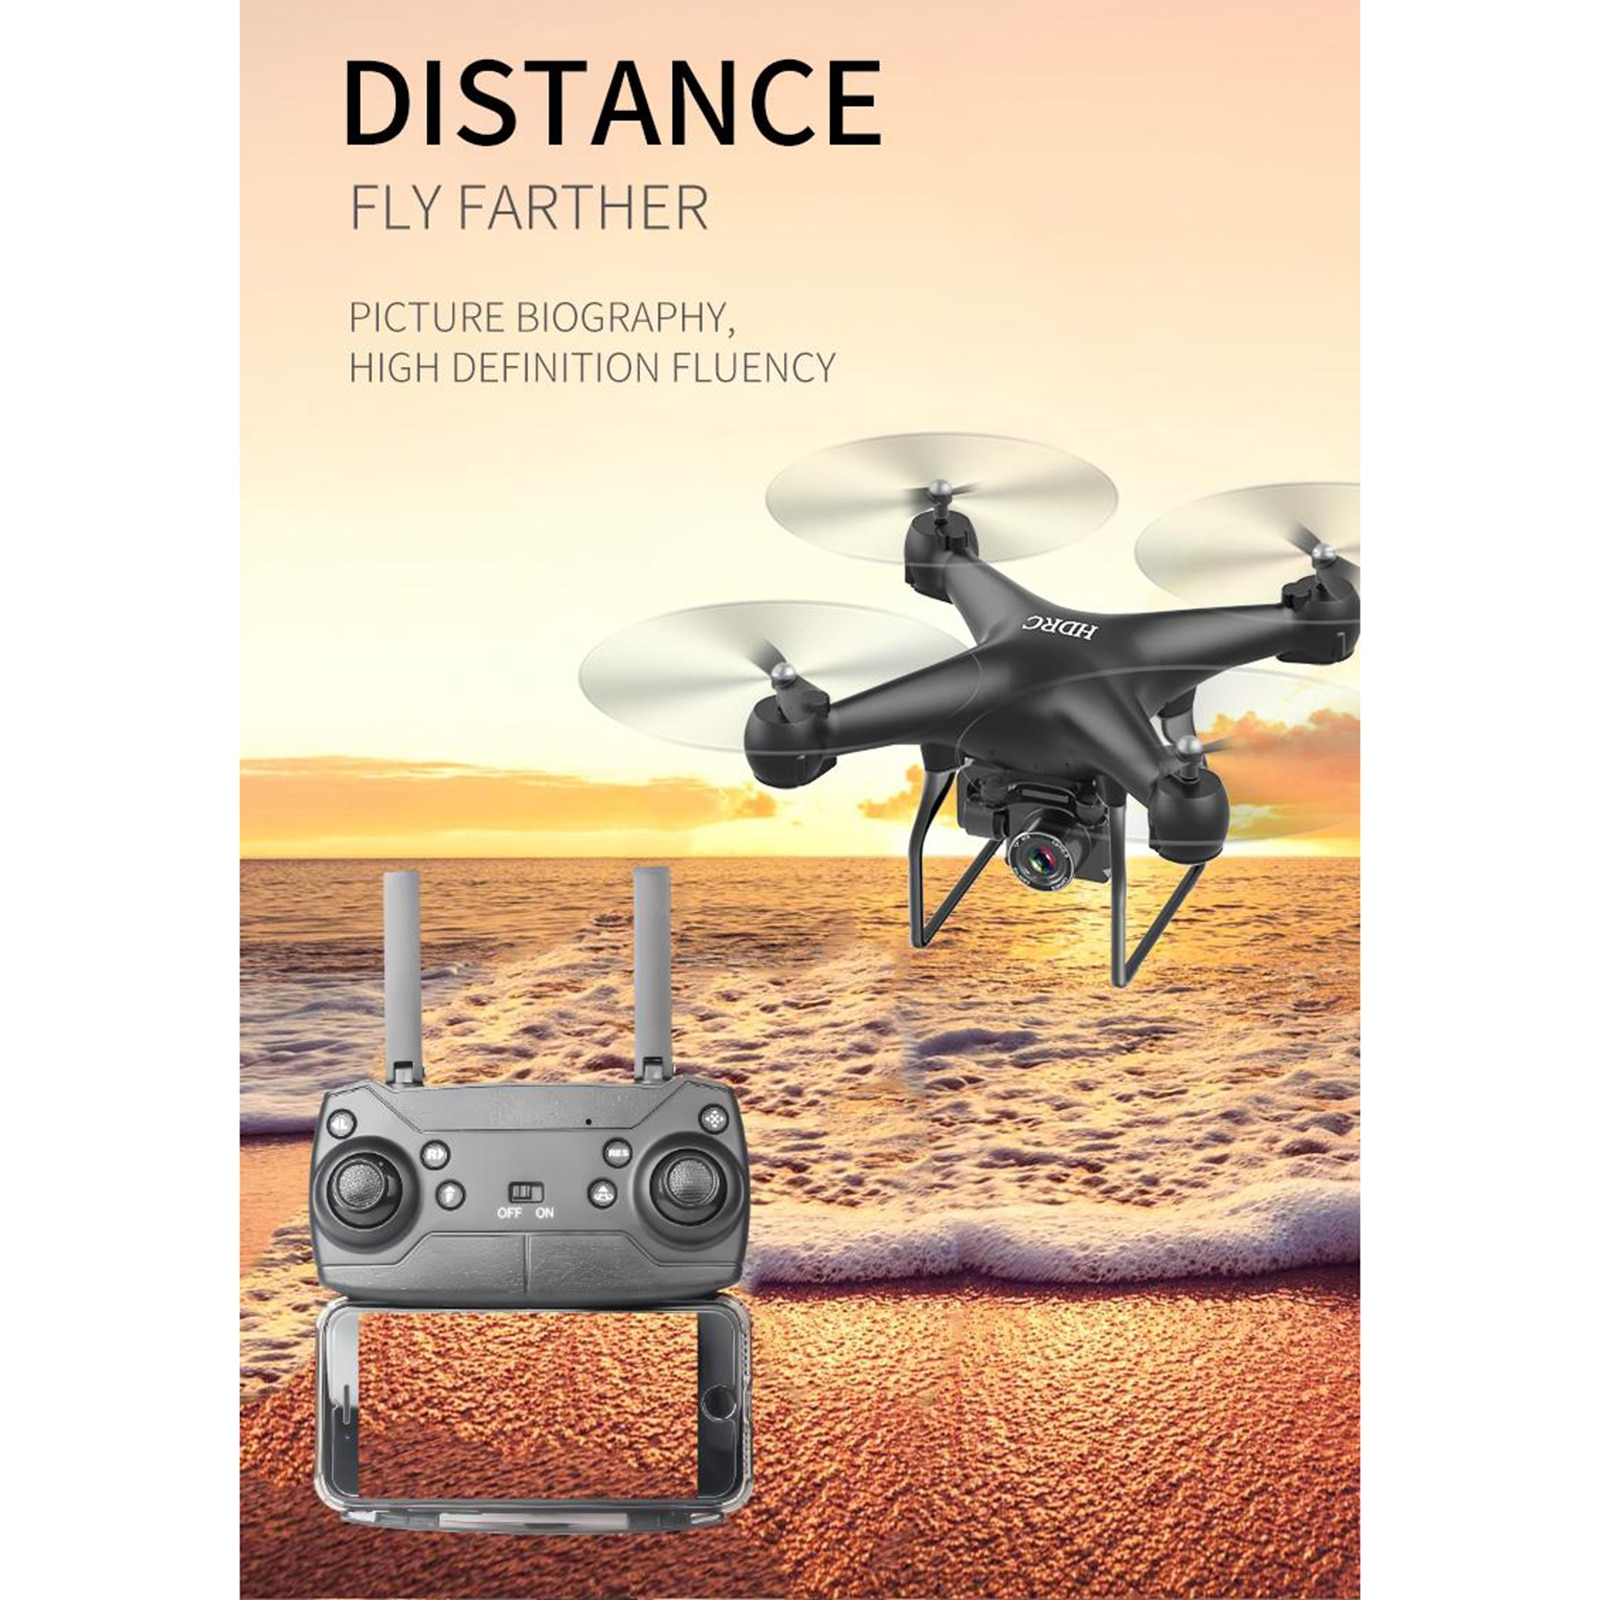 Drone HD Camera Professional Aerial Photography Brushless Motor Quadcopter RC Distance 200M